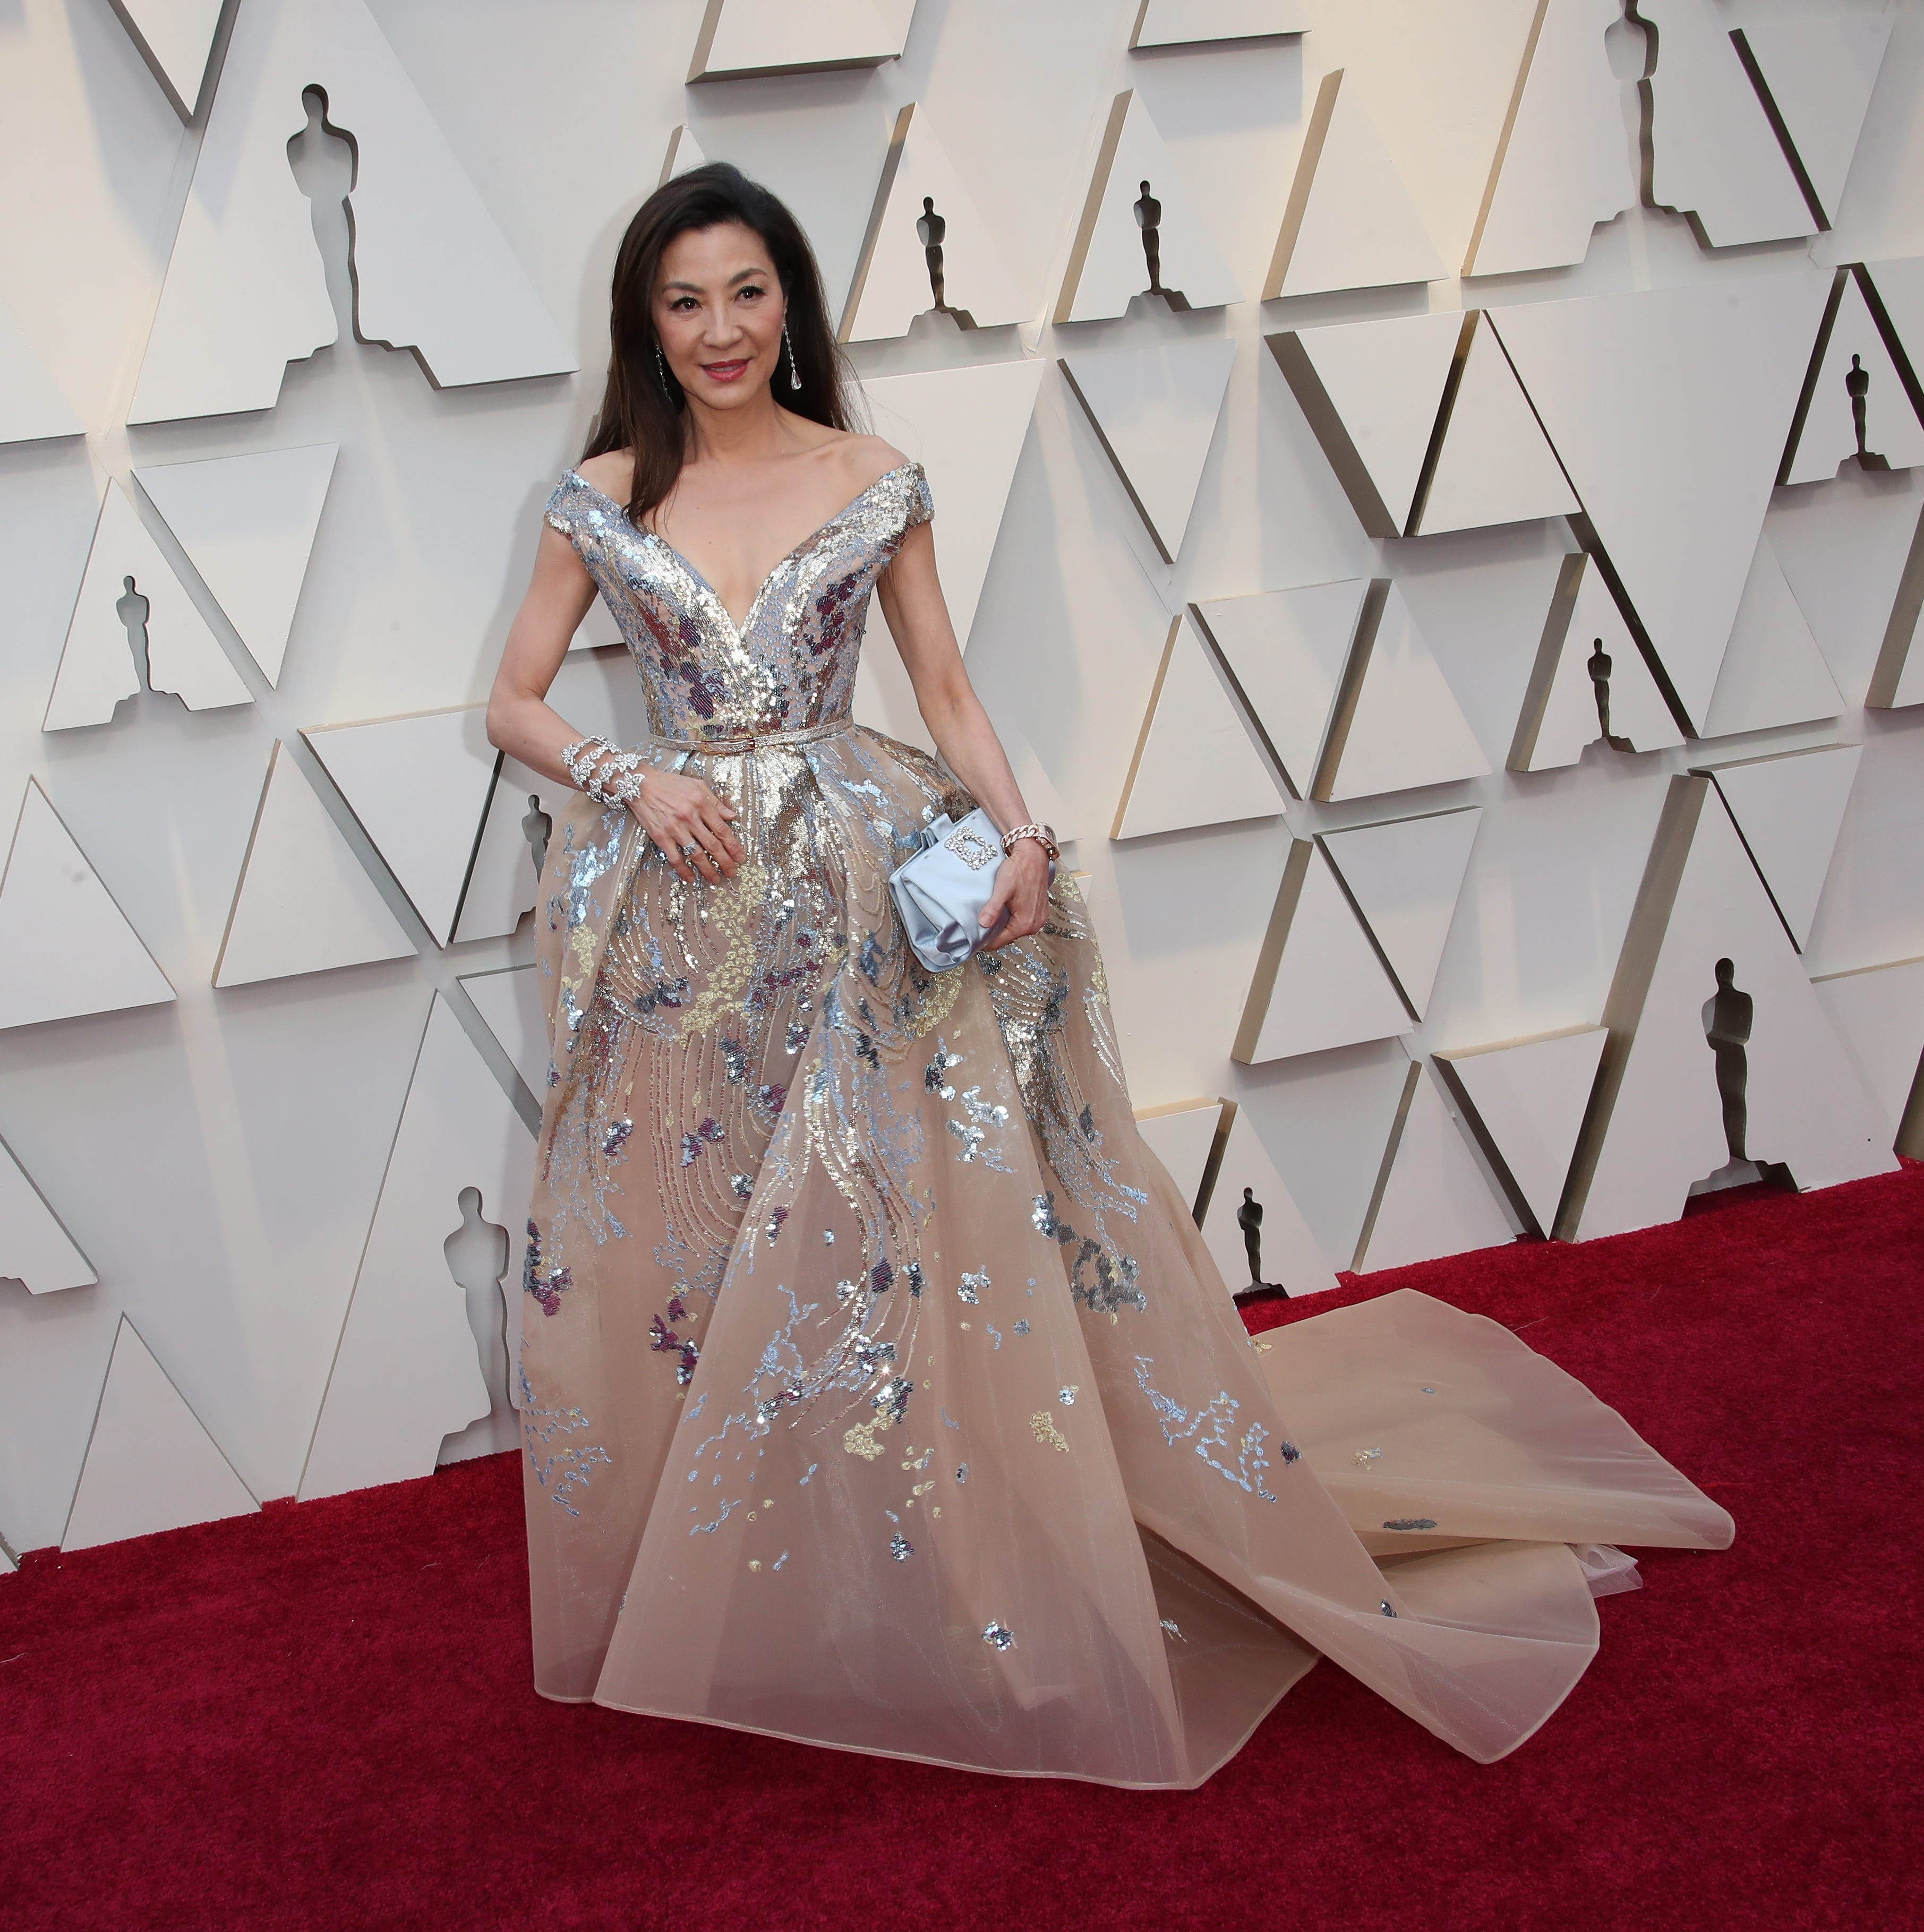 February 24, 2019; Los Angeles, CA, USA; Michelle Yeoh arrives at the 91st Academy Awards at the Dolby Theatre. Mandatory Credit: Dan MacMedan-USA TODAY NETWORK (Via OlyDrop)